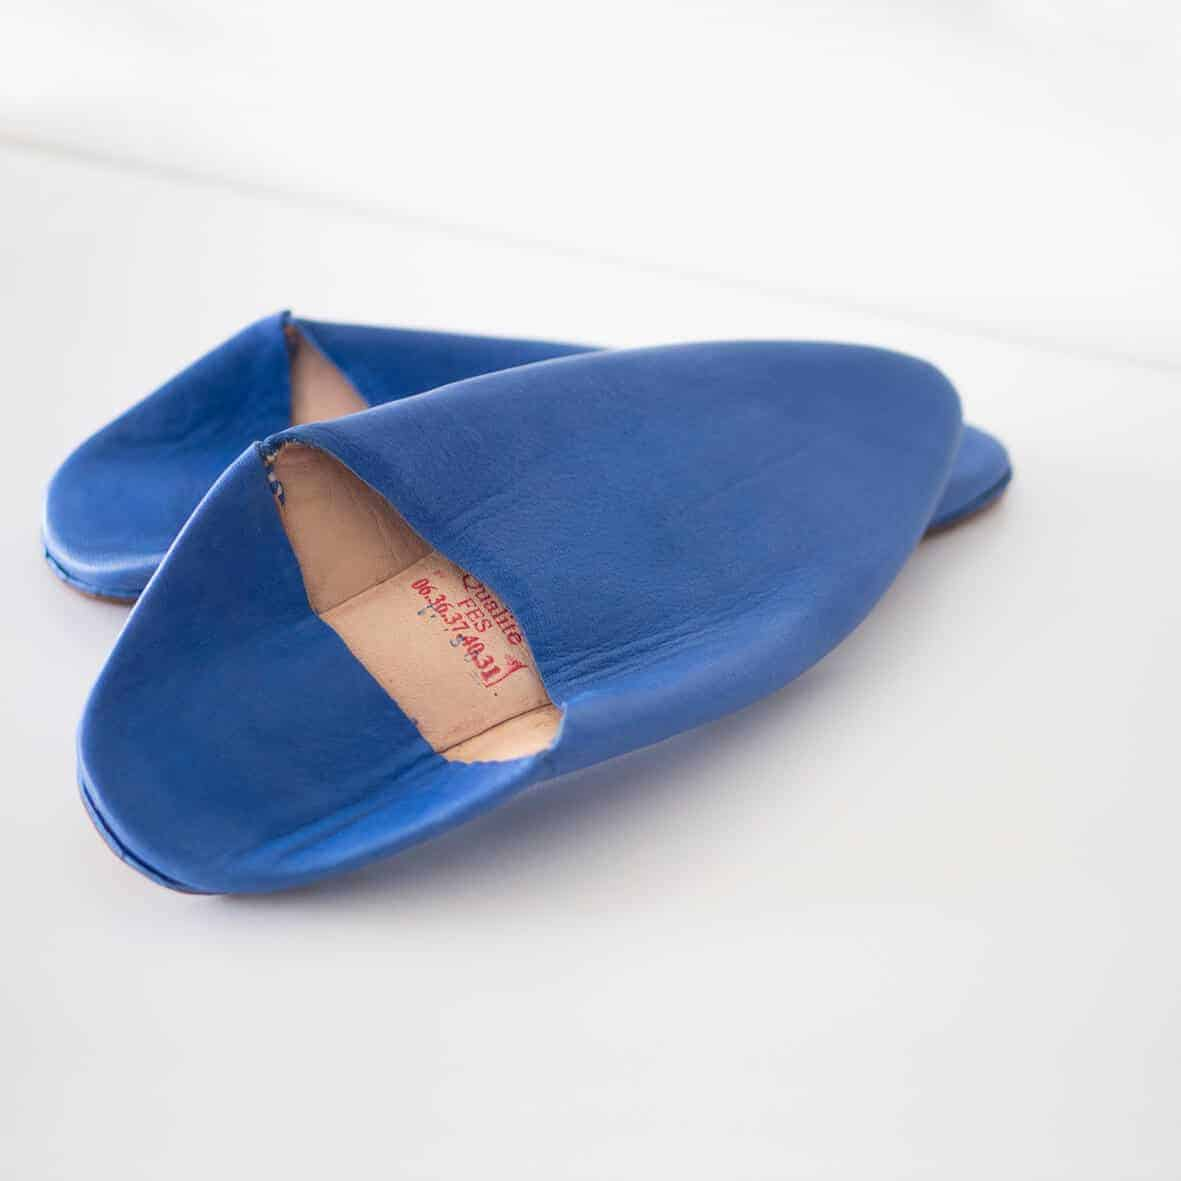 blue-moroccan-slippers1